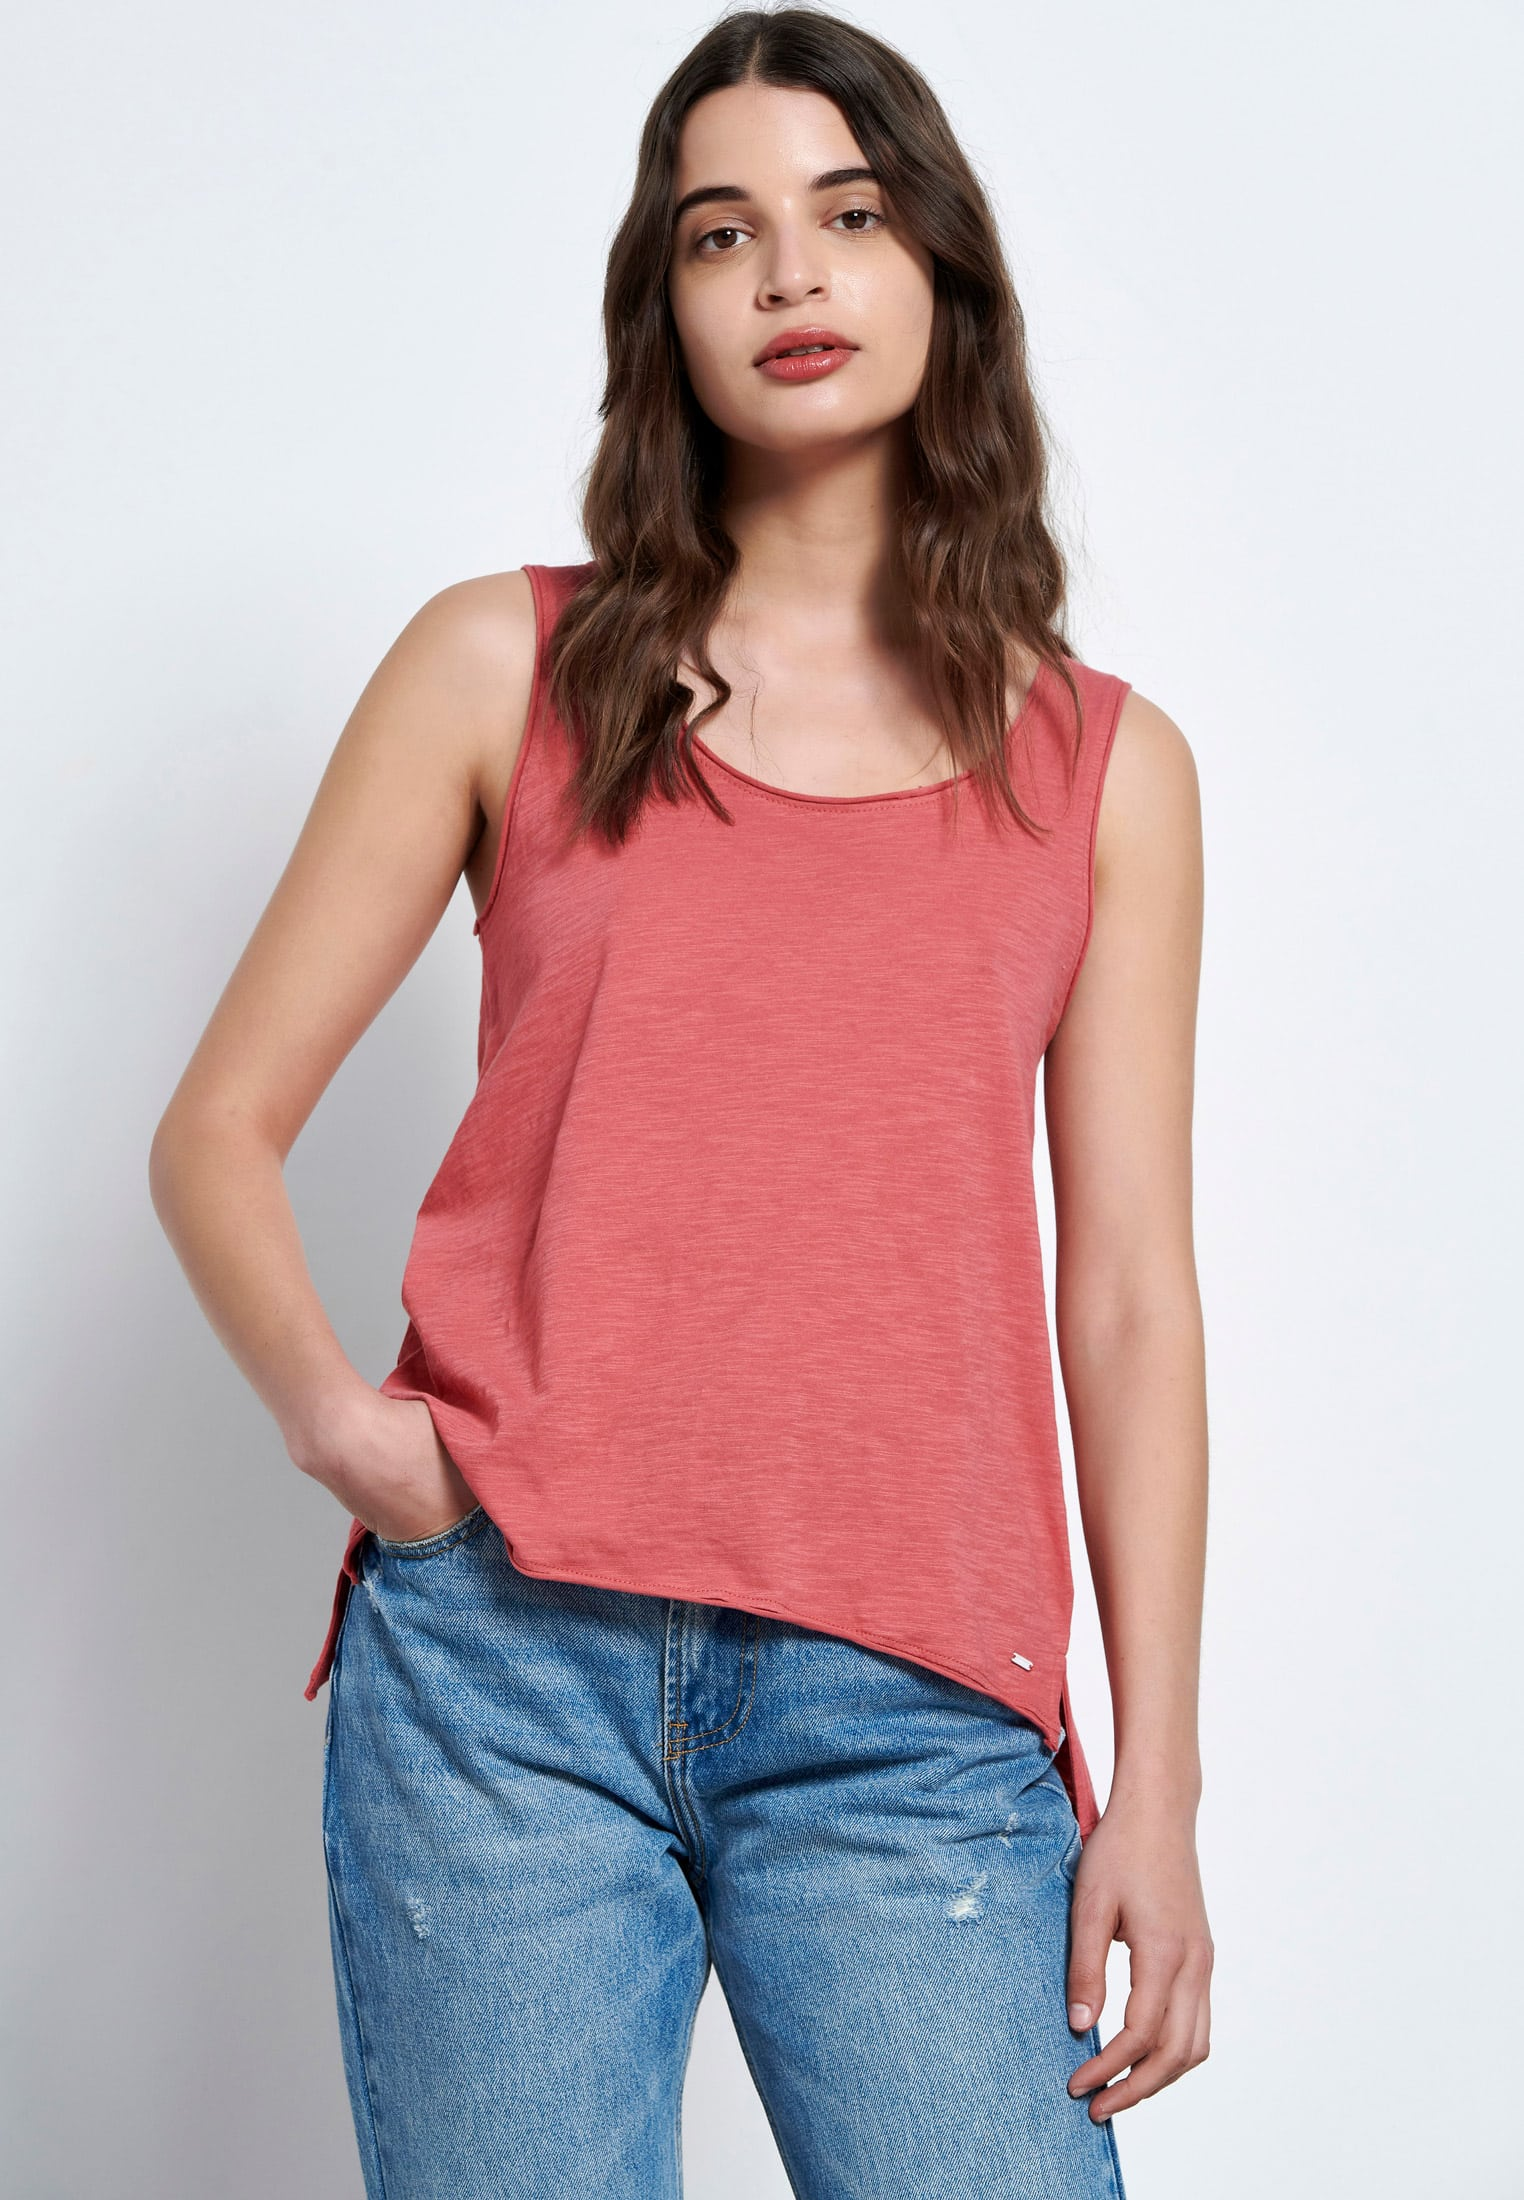 FBL003-102-04_FADED ROSE